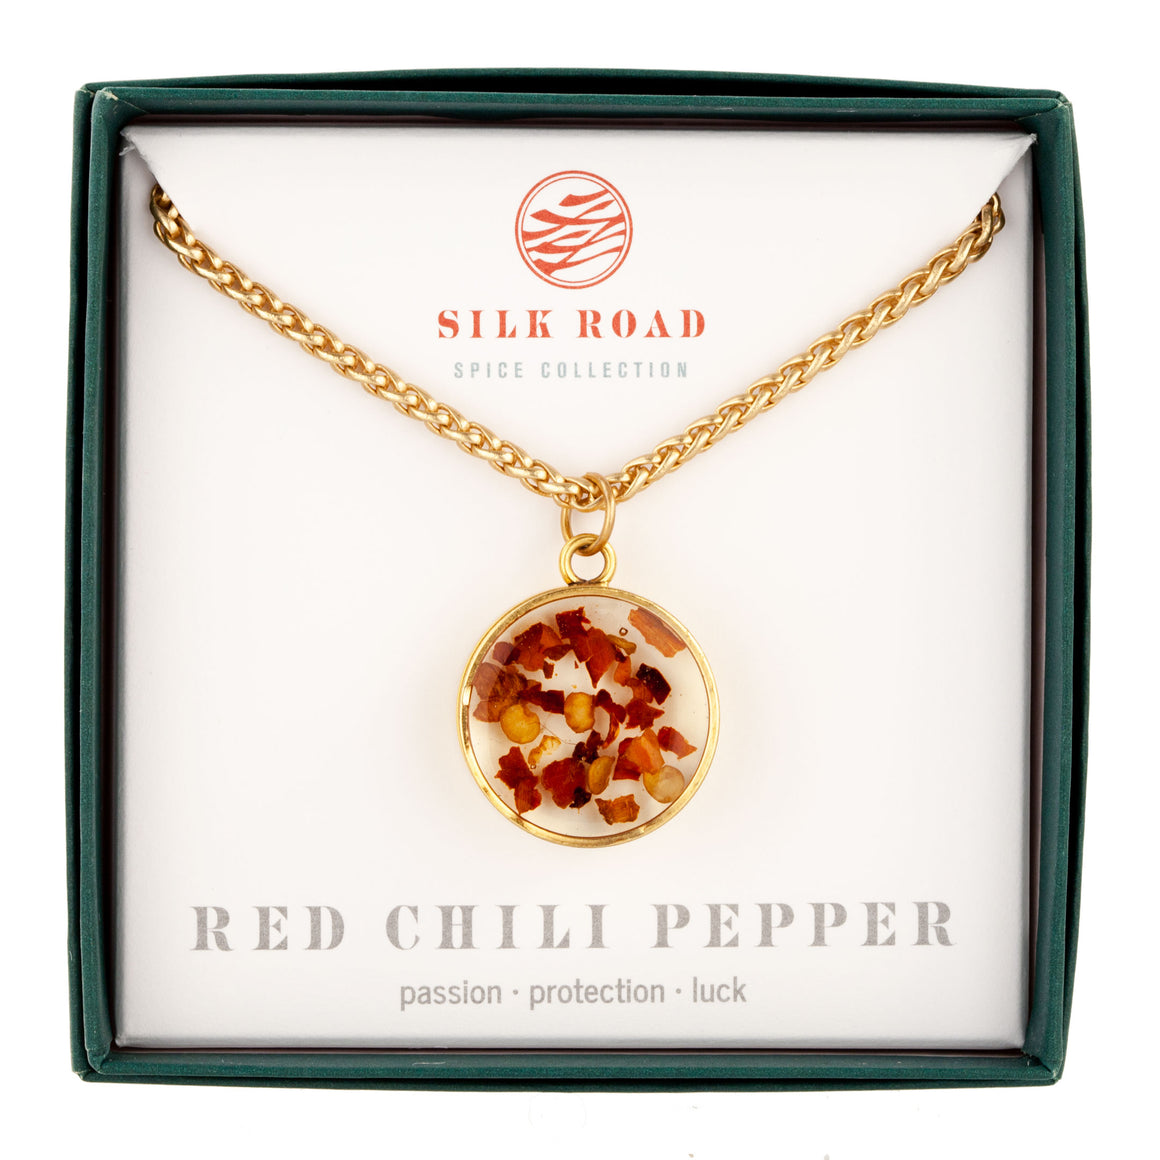 Red Chili Pepper | Monocle Necklace